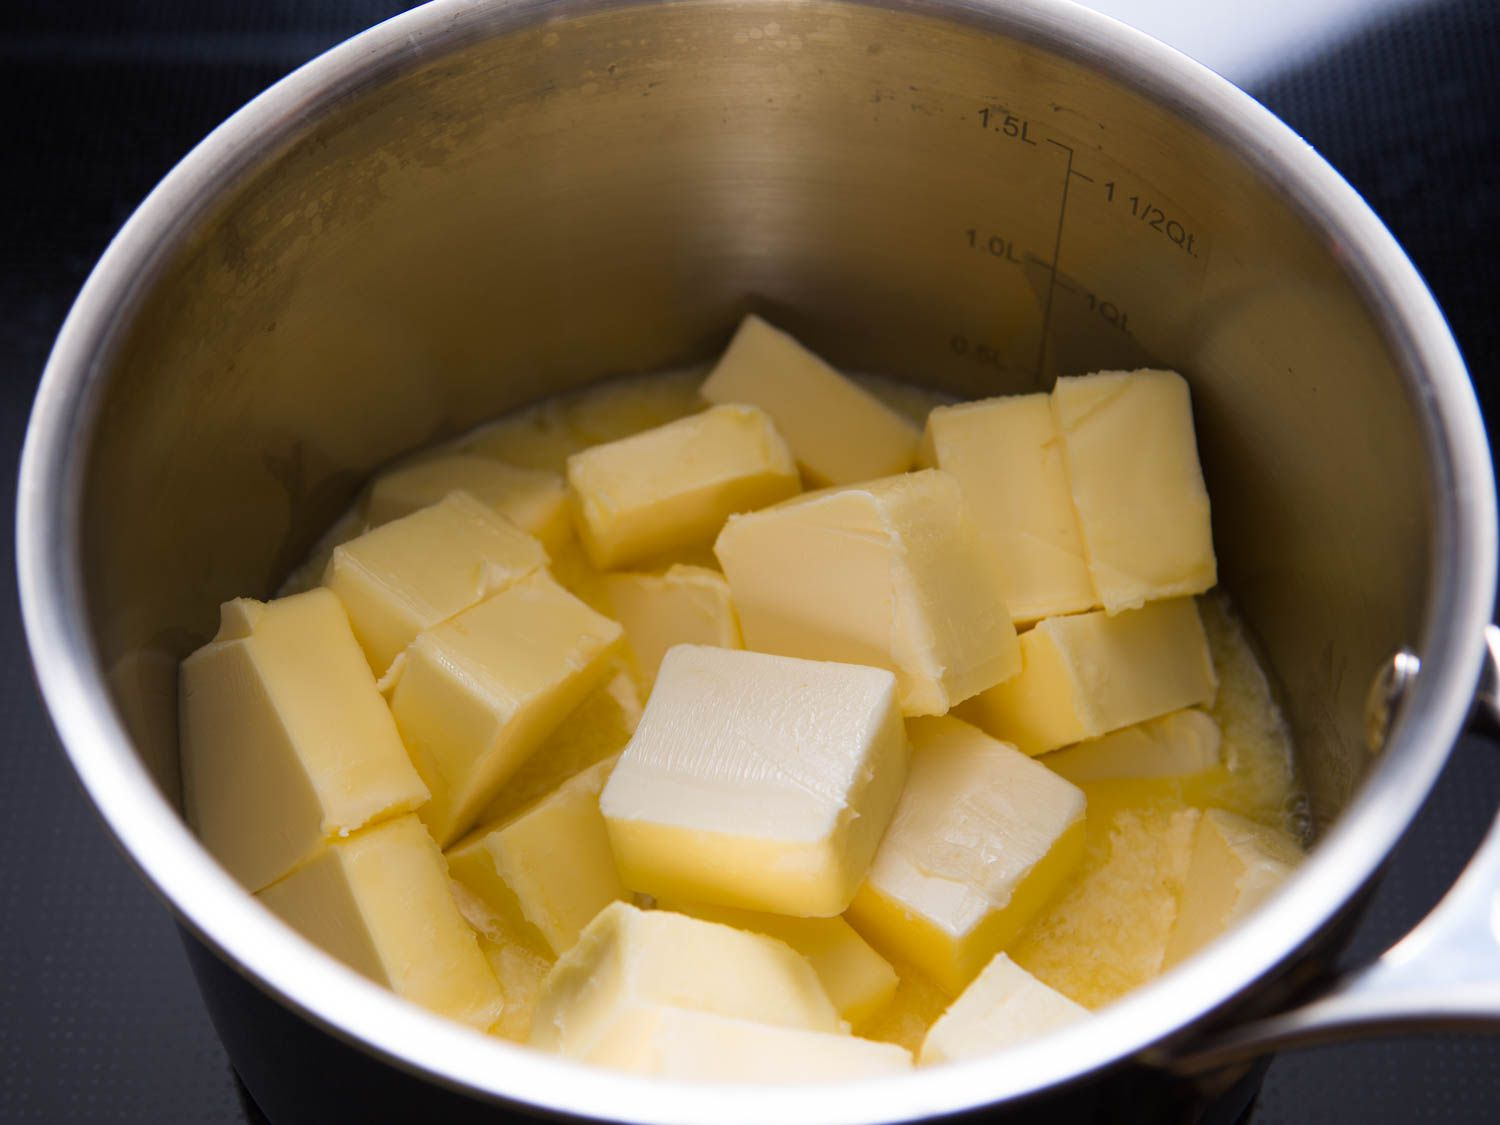 cubes of butter in a saucepot. The butter is starting to melt.